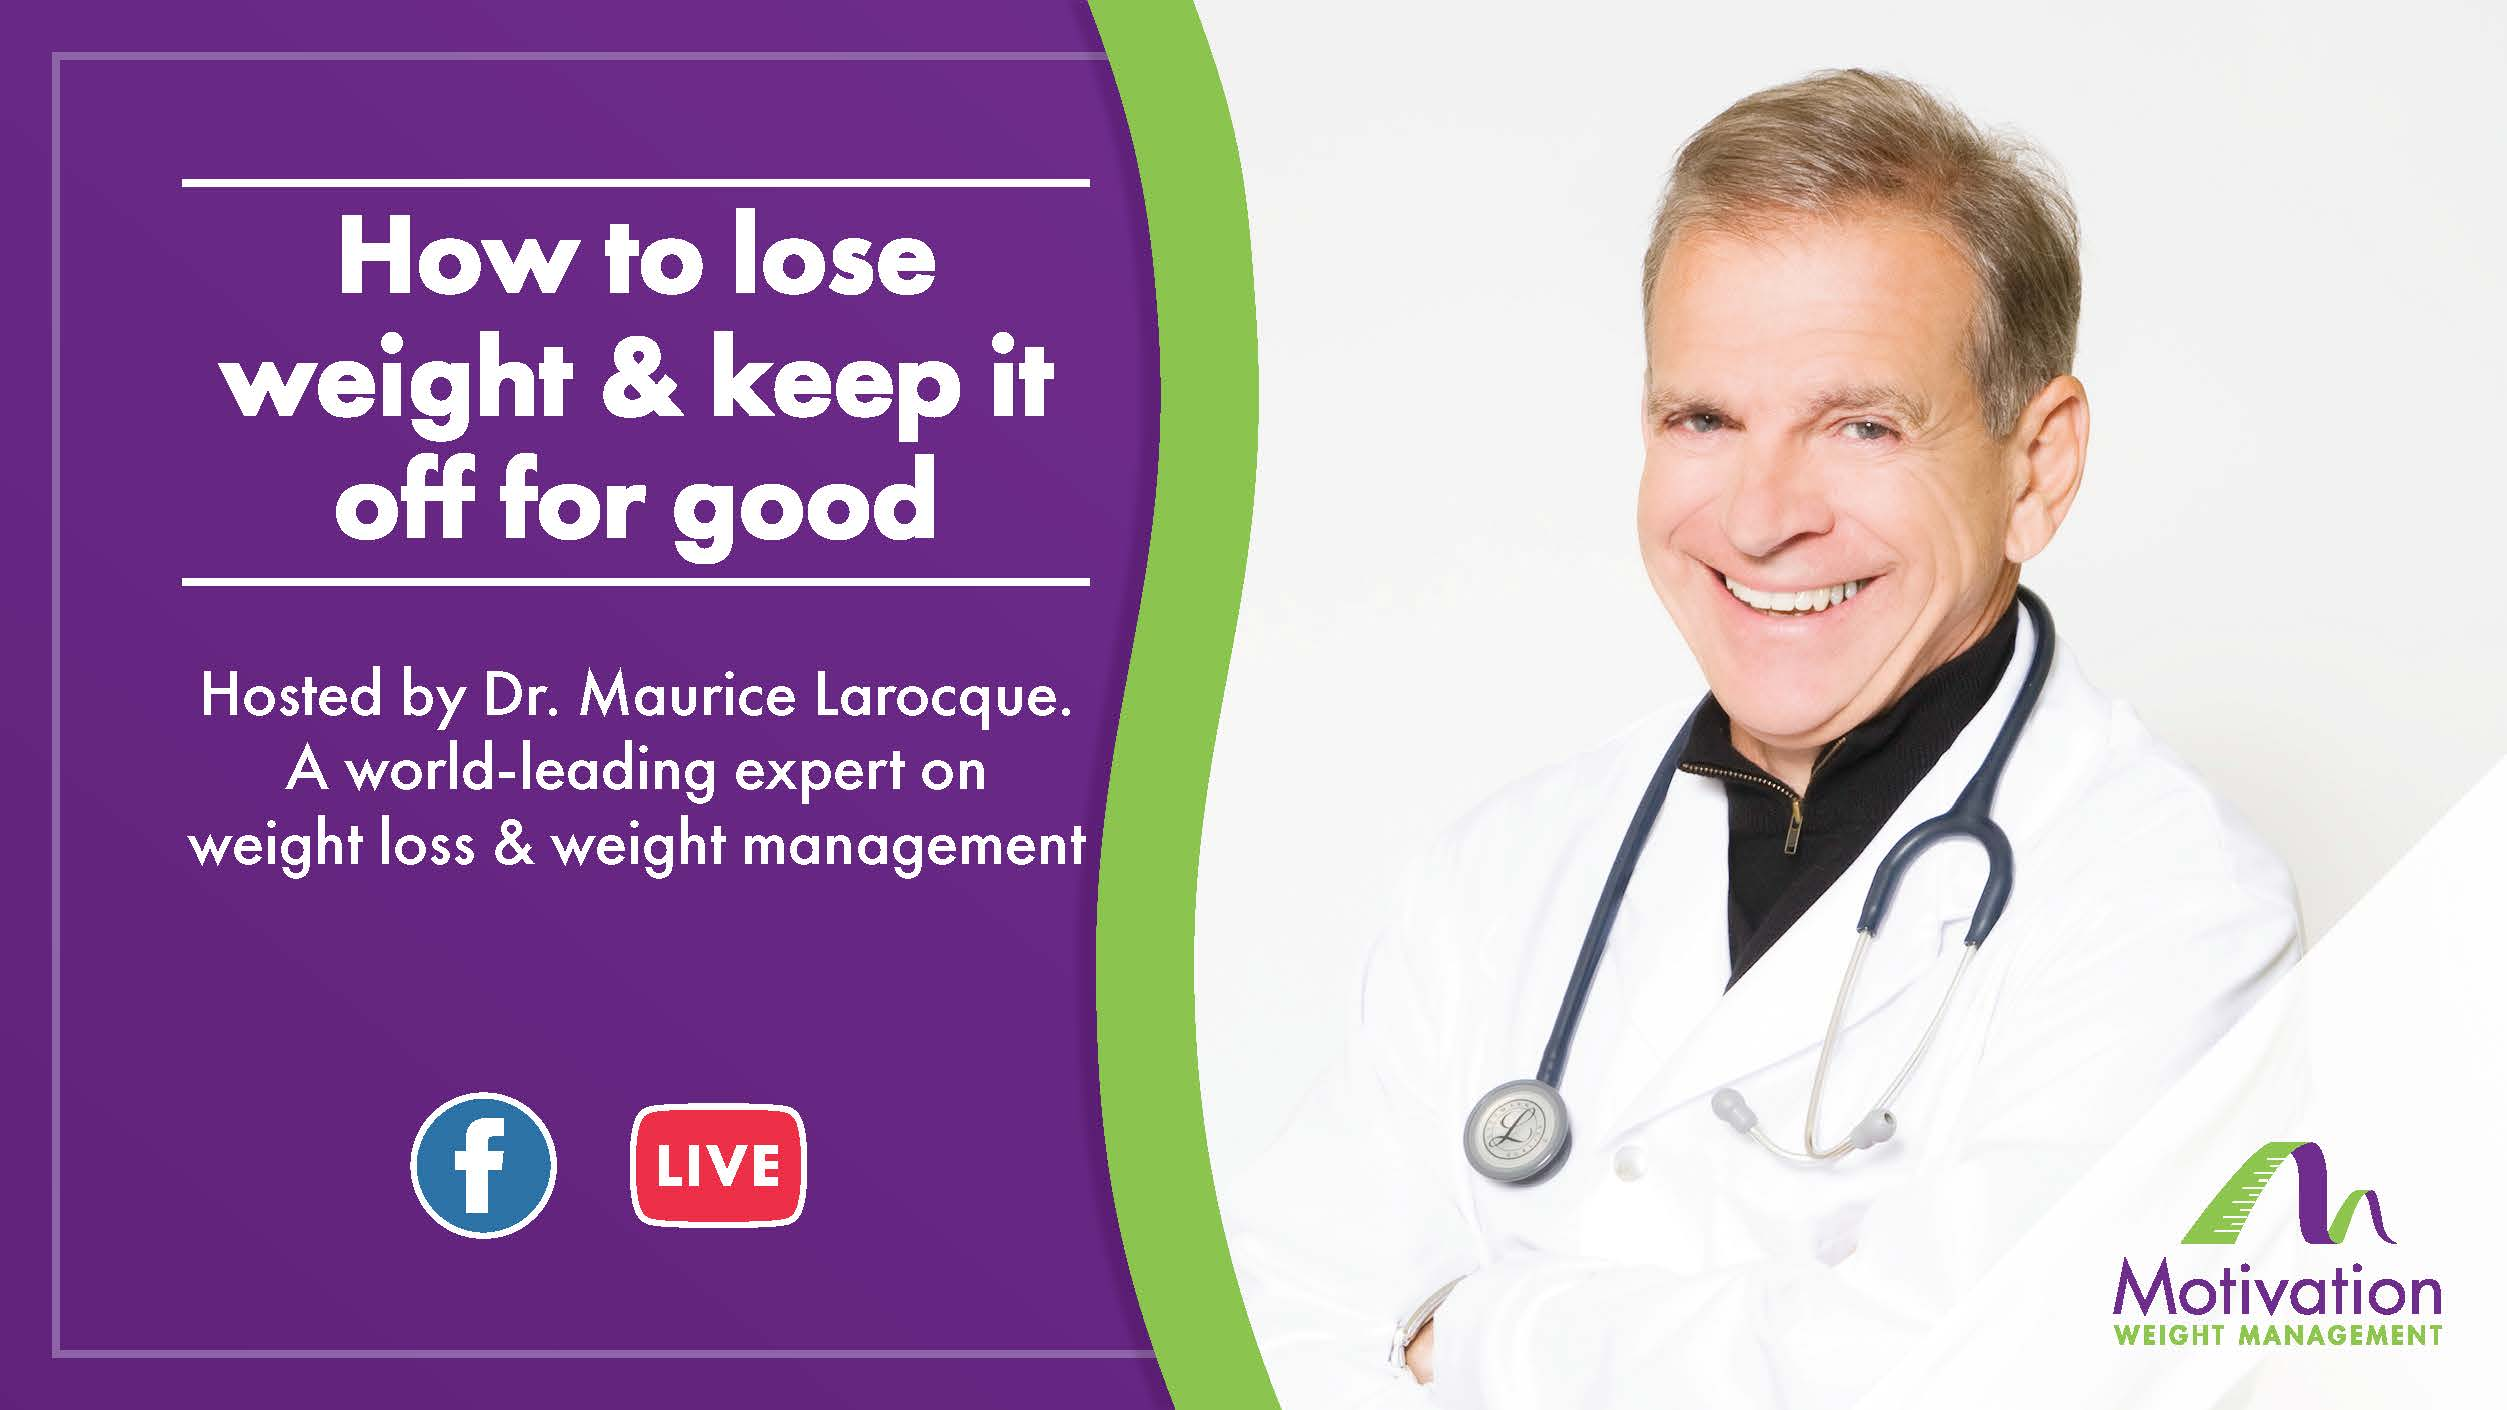 Dr. Maruice Larocque Facebook Live Q&A 27th June 2019